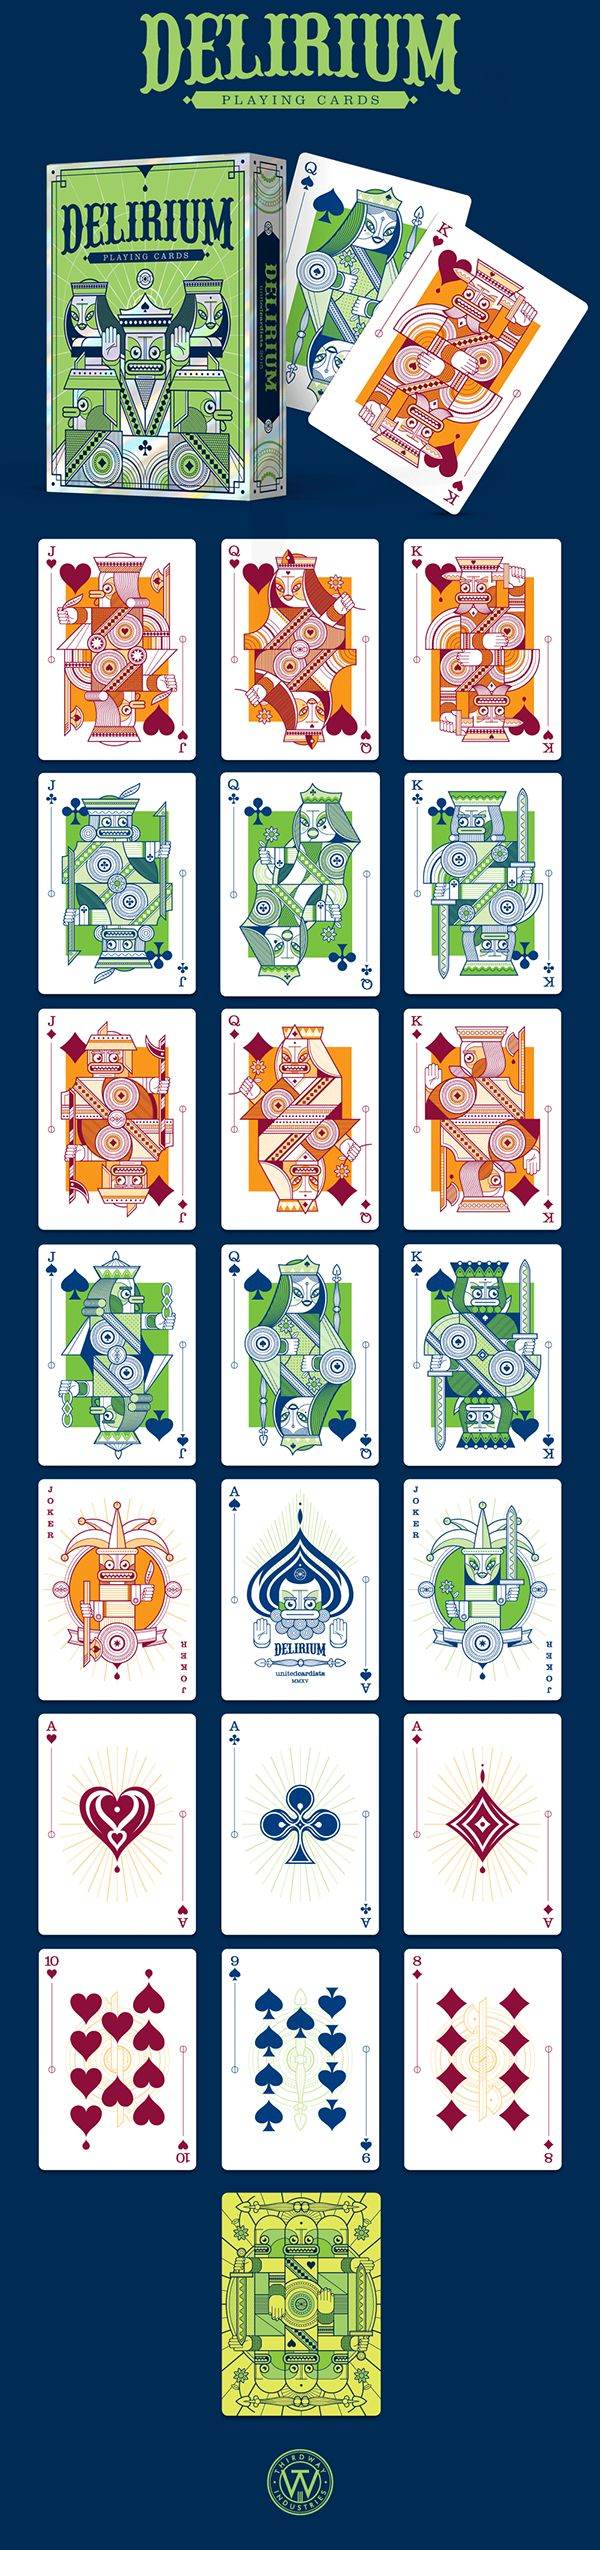 A playing cards deck, being funded on Kickstarter.https://www.kickstarter.com/projects/thirdwayind/delirium-playing-cards